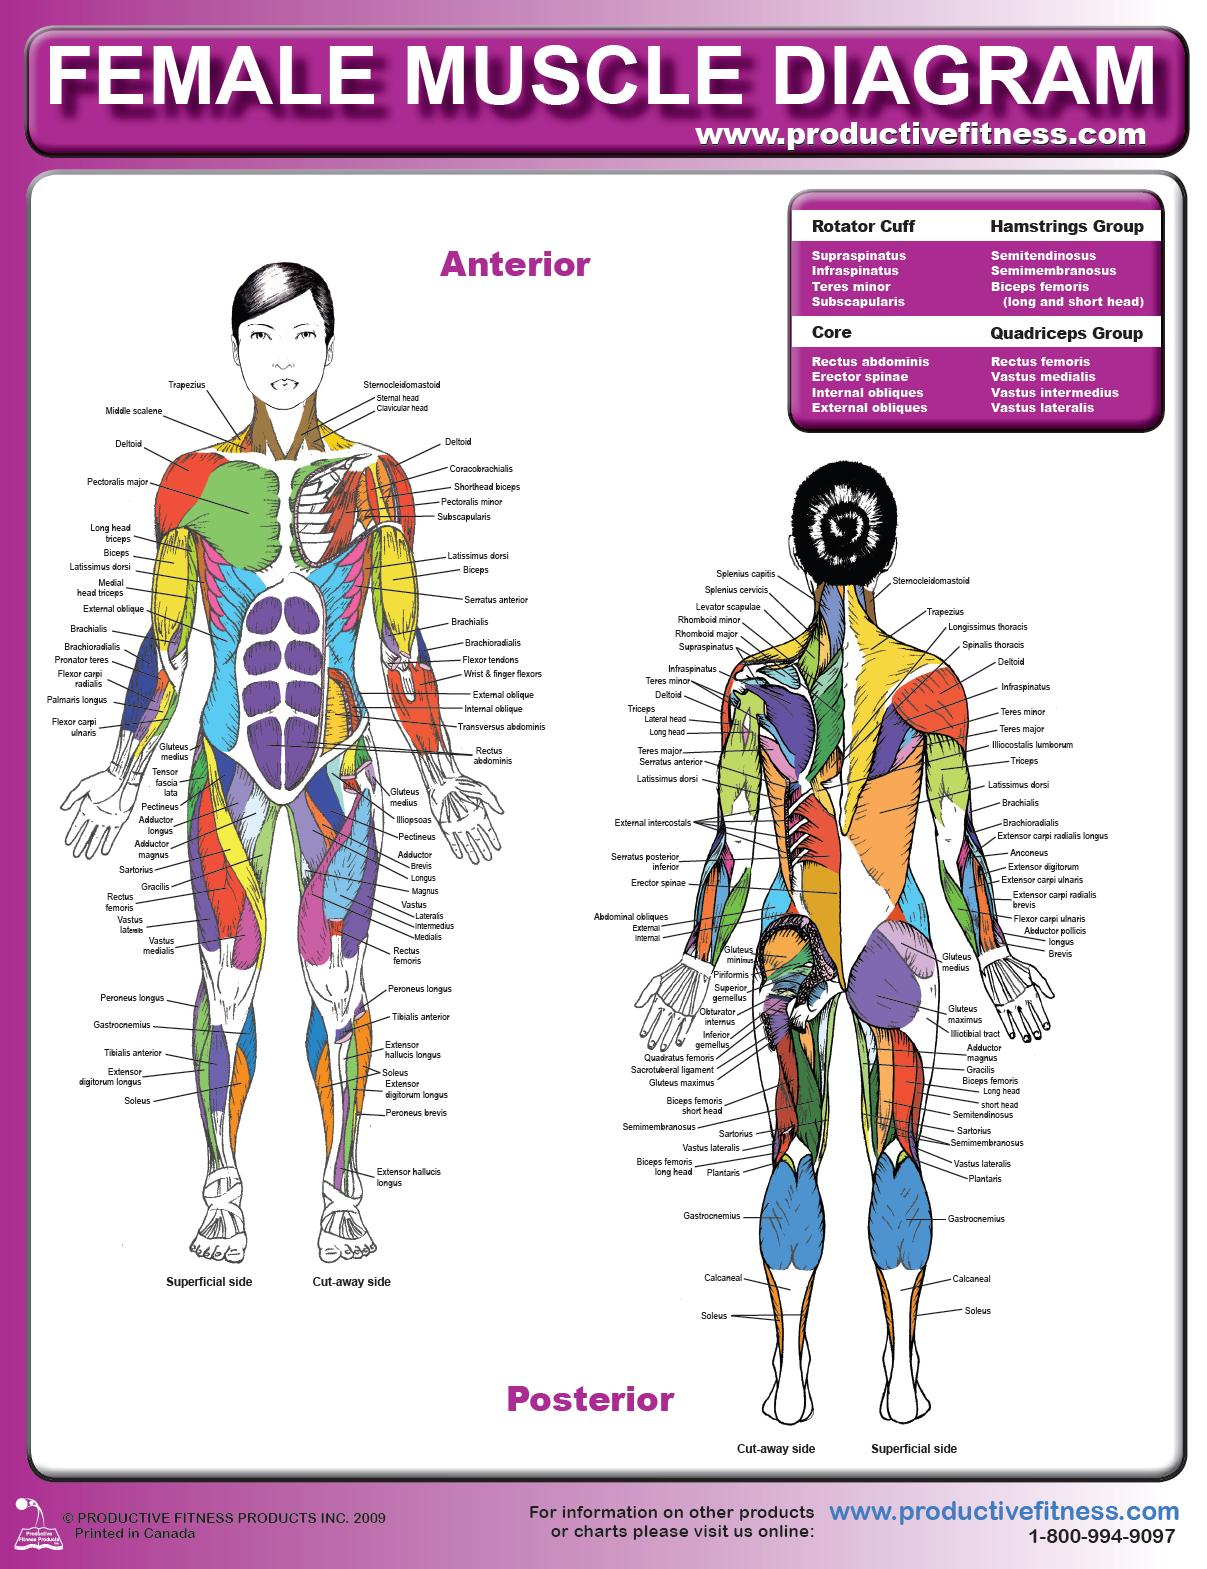 Female Muscle Diagram and Definitions | Jacki's Blog